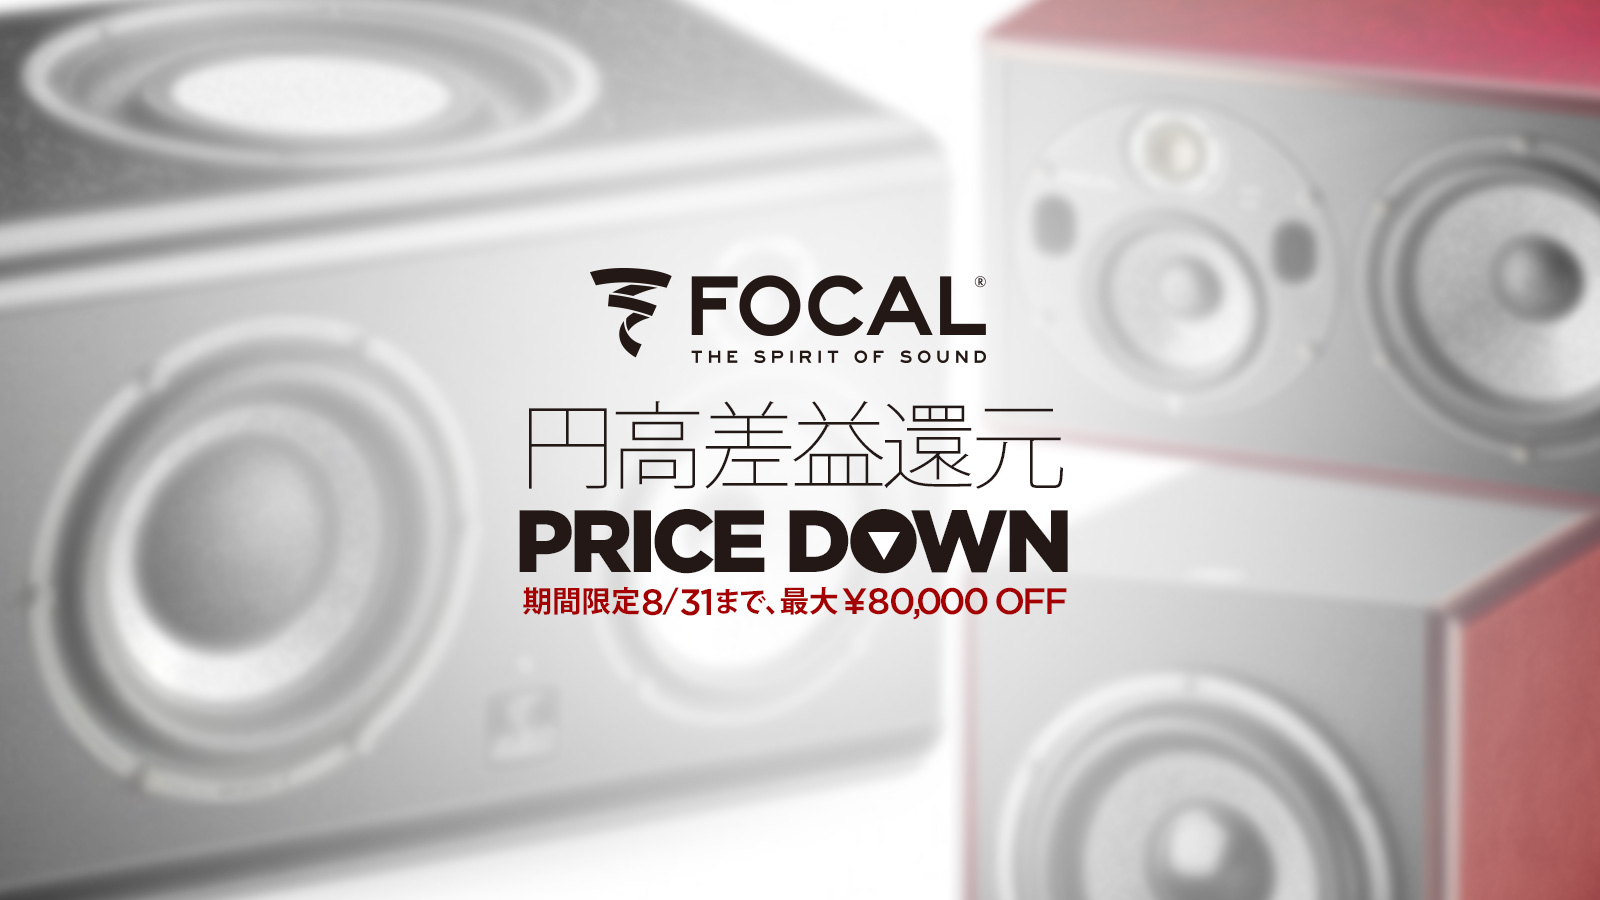 Focal Promotion